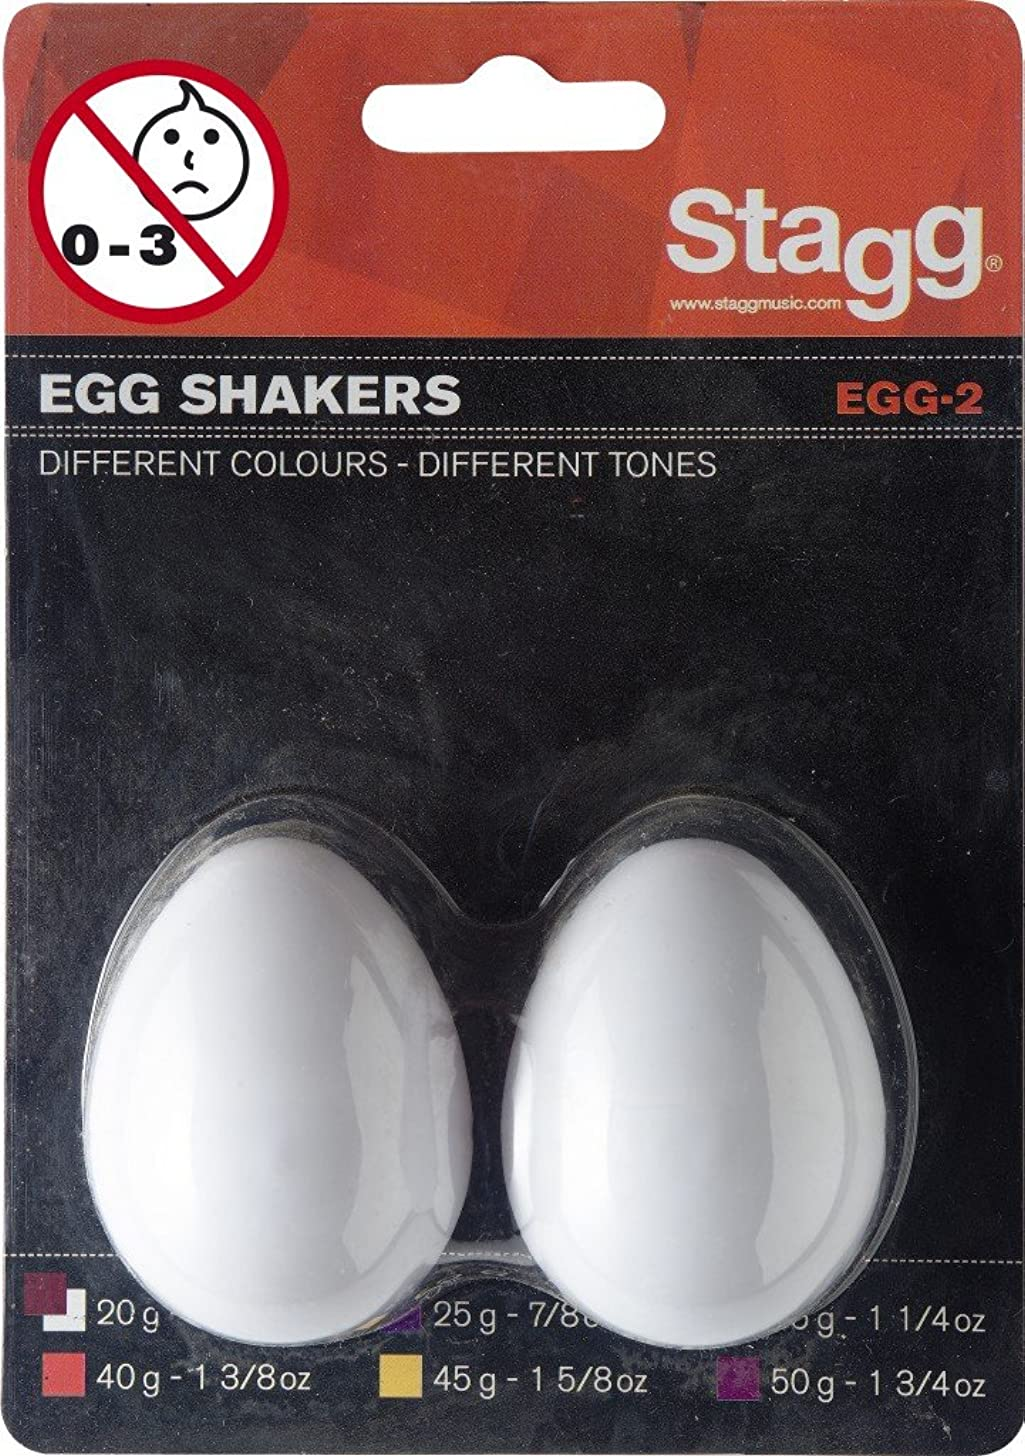 Stagg Egg Shakers (2 piece set) - White